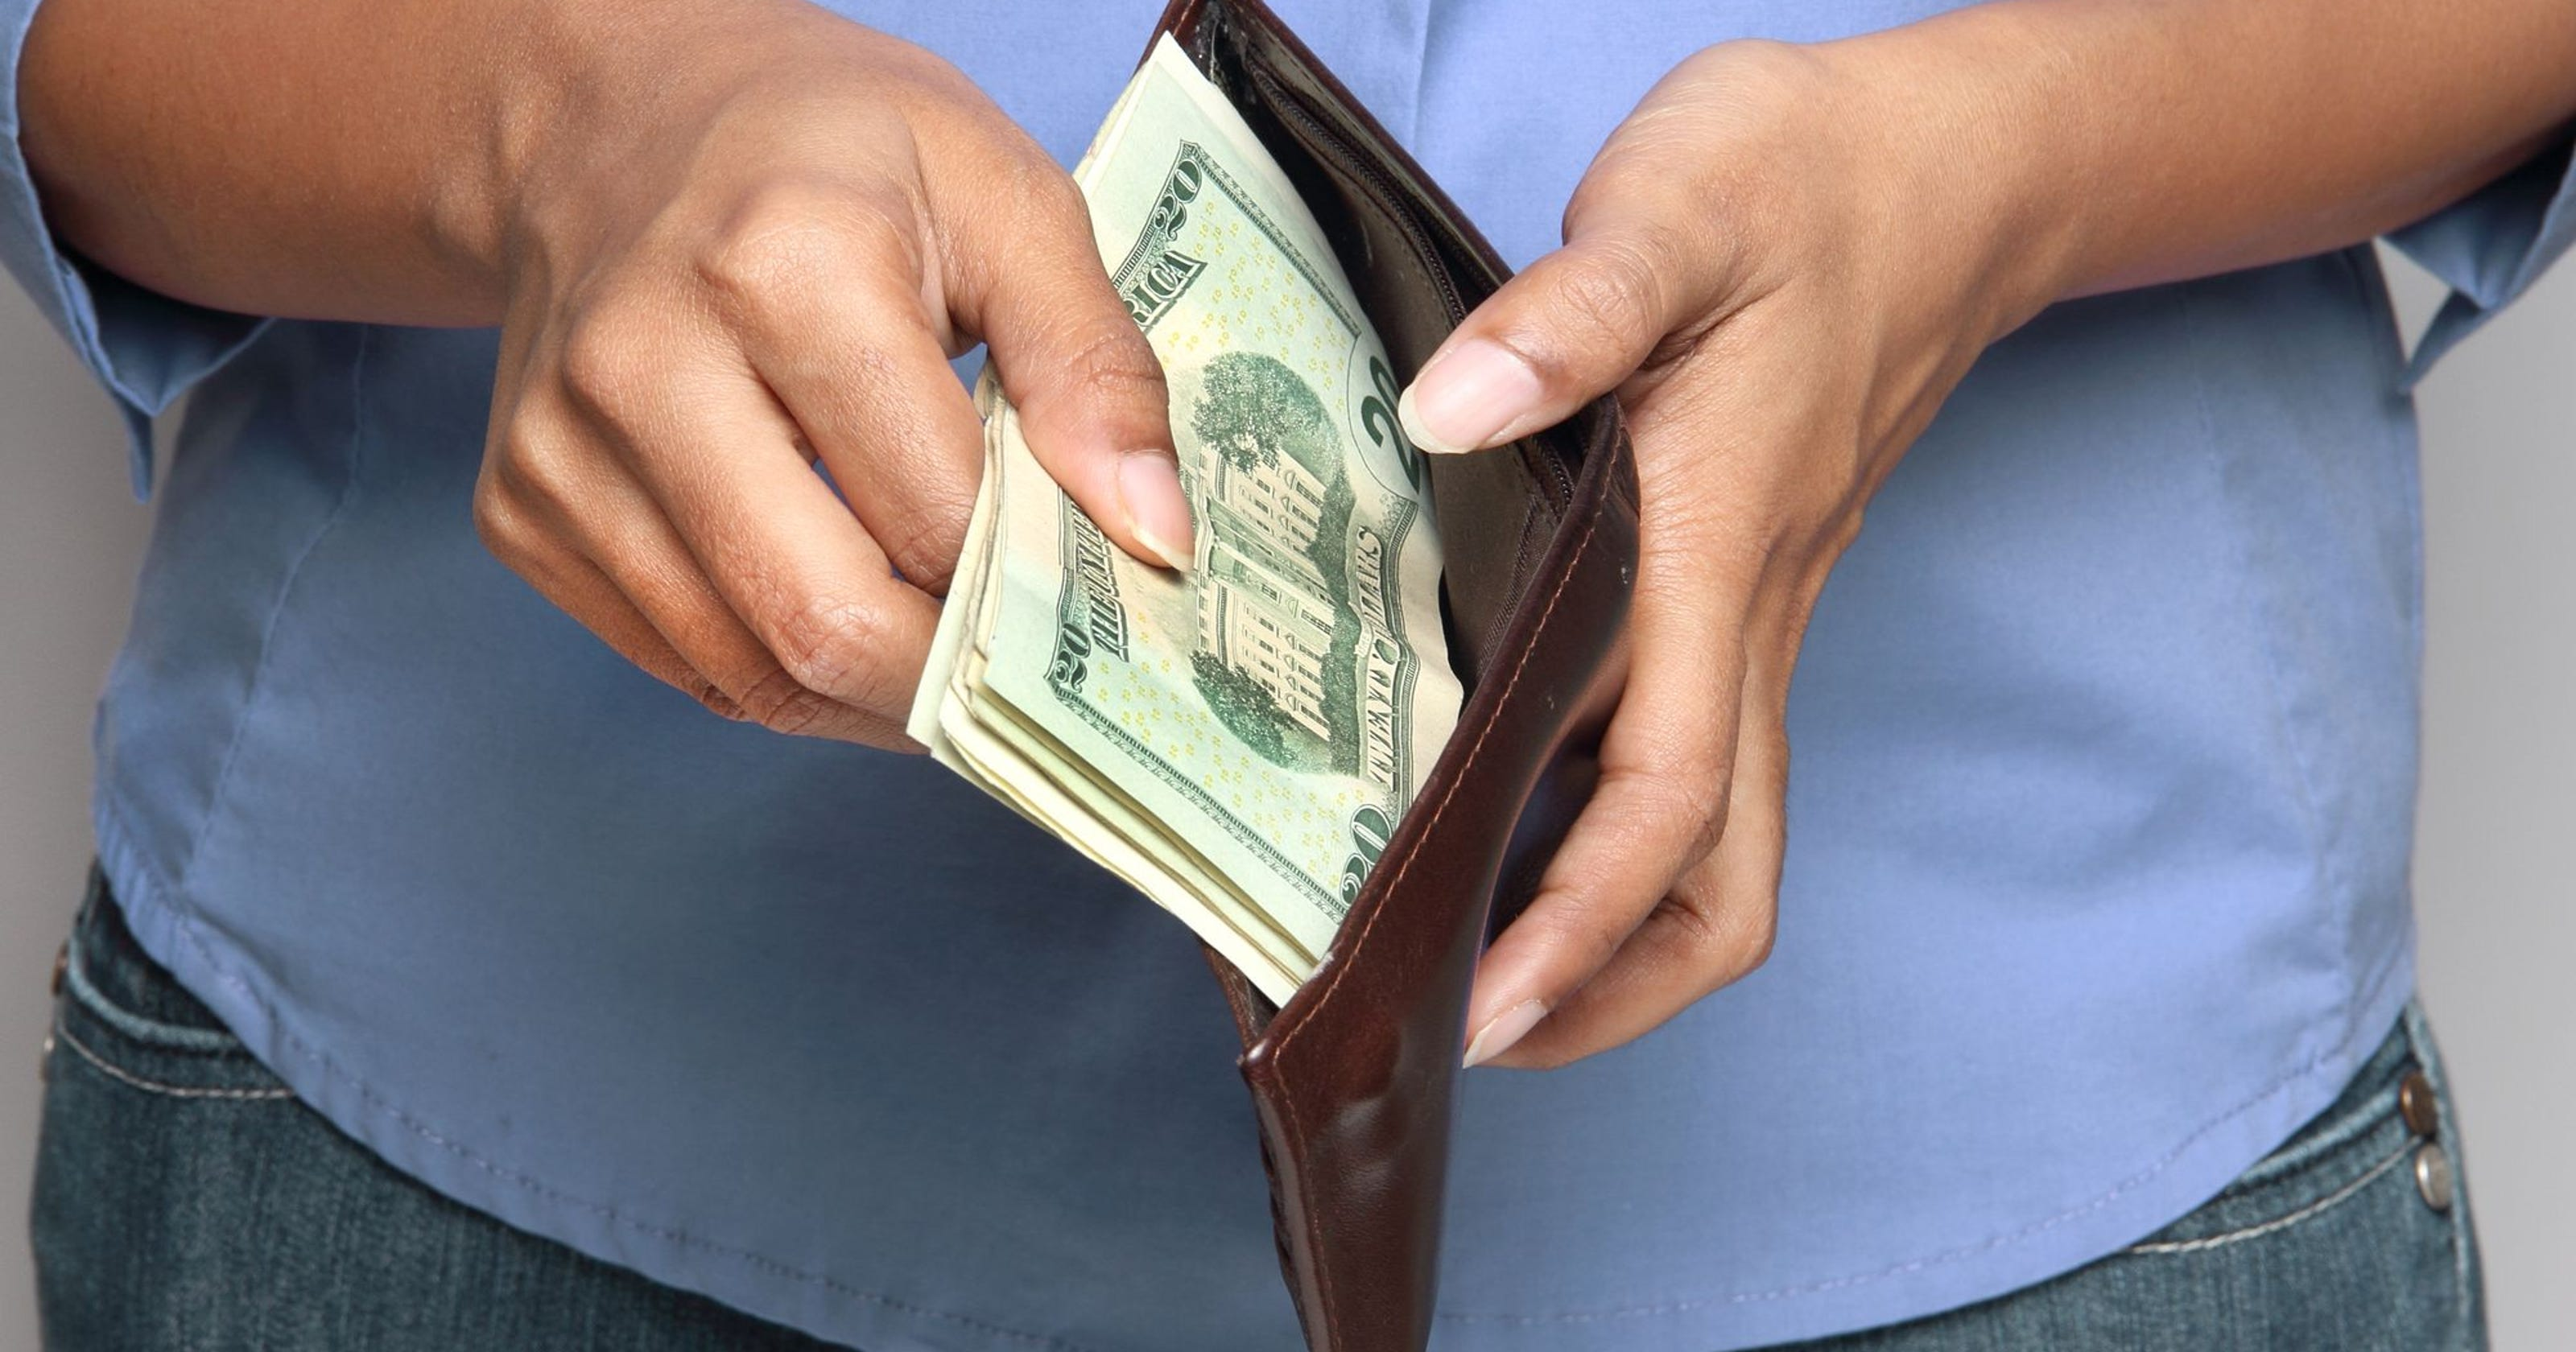 Heres How Much To Tip For Everything From Getting Food To Haircuts